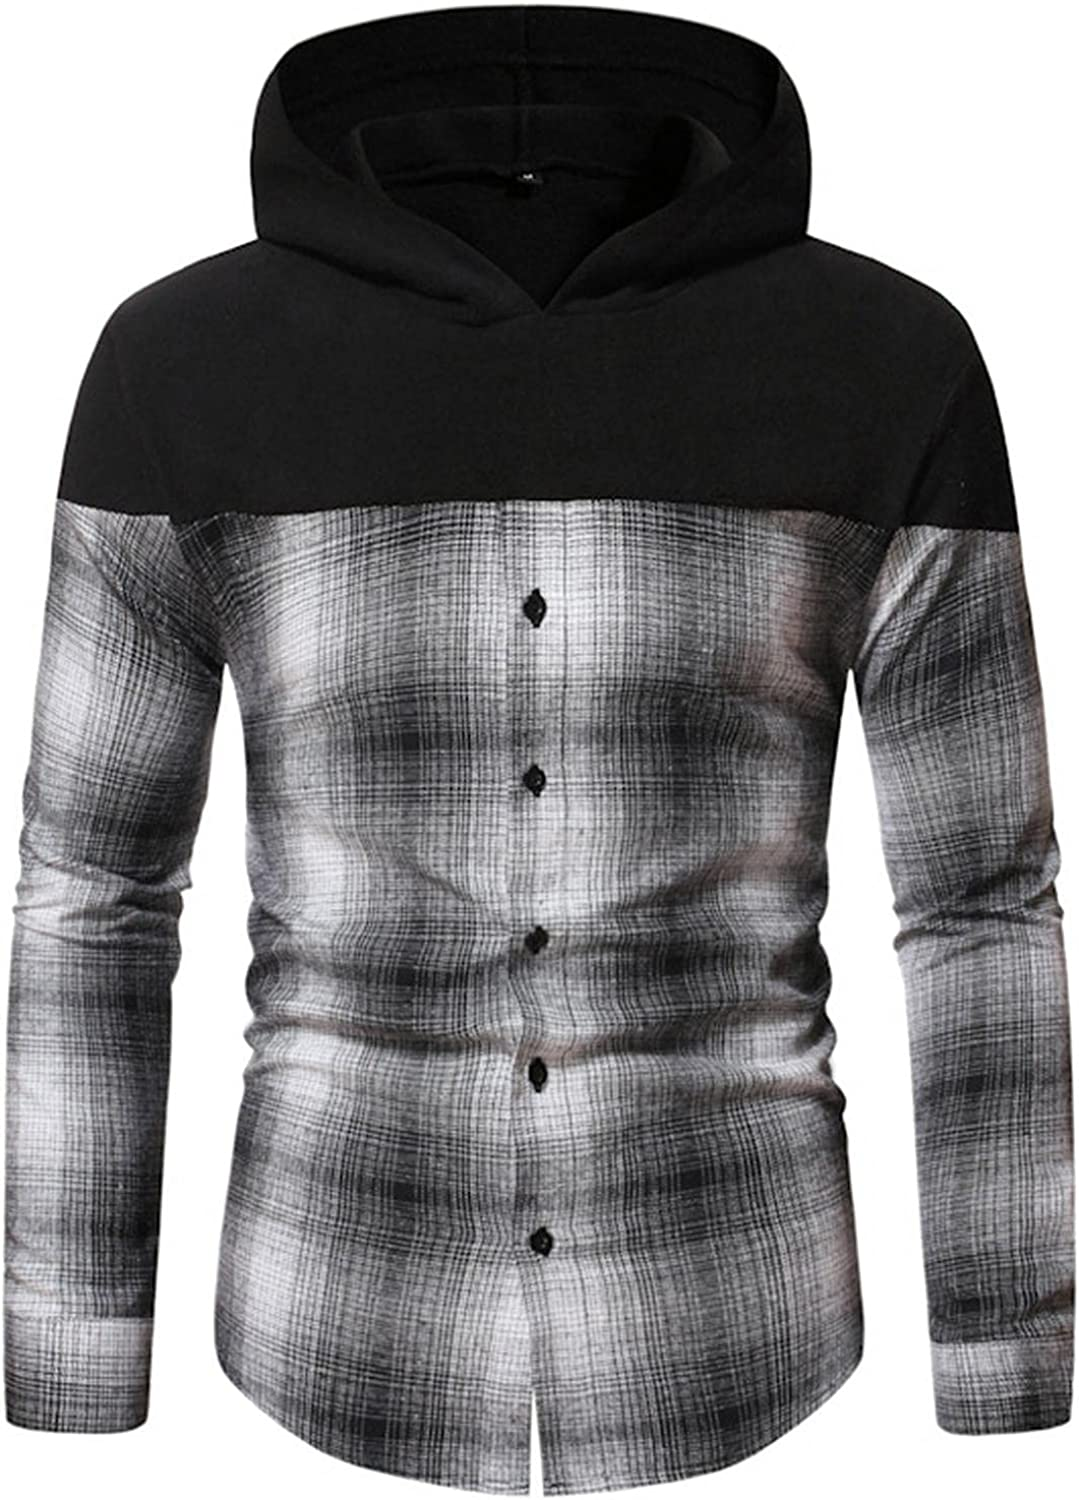 Aayomet Hoodies Sweatshirts for Men Color Block Checked Button Casual Long Sleeve Hooded Pullover Tops Blouses Sweaters